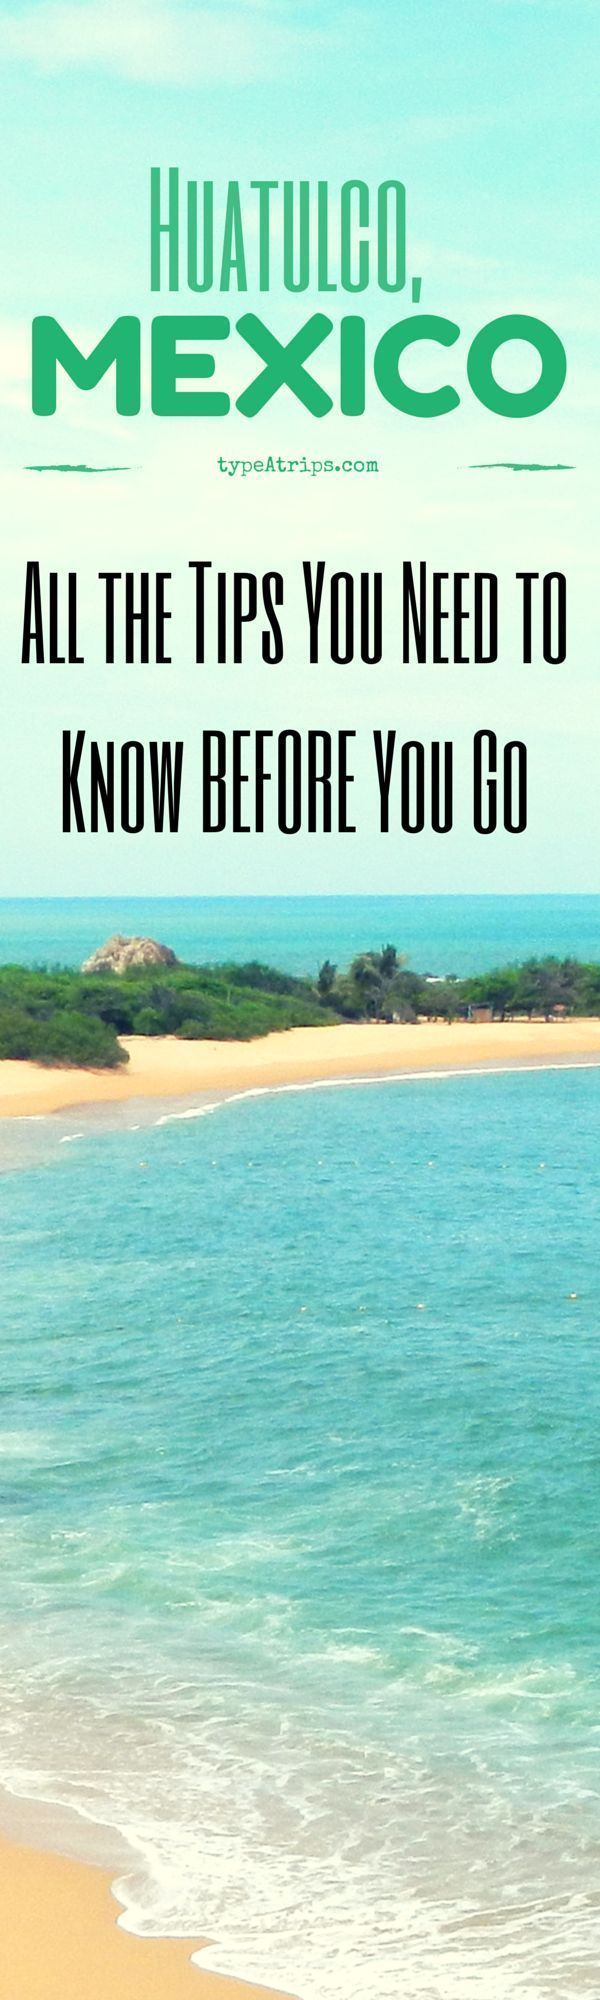 Huatulco, Mexico | All the Travel Tips You Need to Know Before You Go